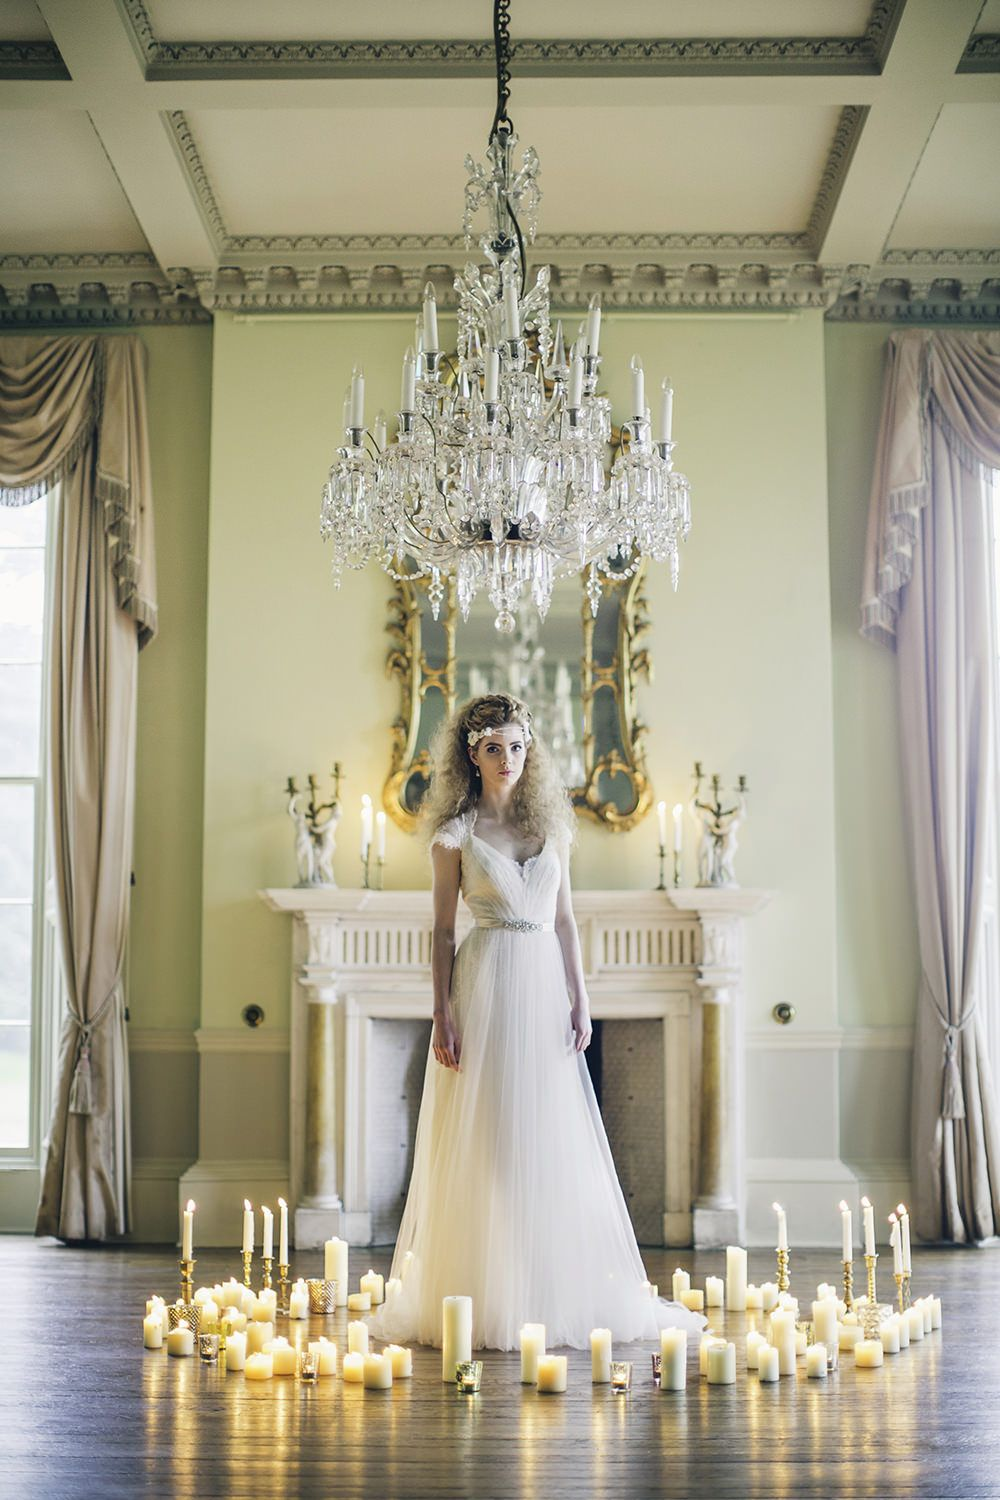 Lusan mandongus and eliza jane howell wedding dresses for a bridal lusan mandongus and eliza jane howell wedding dresses for a bridal inspiration shoot at prestwold hall with gowns from the wedding shop nottingham with junglespirit Gallery